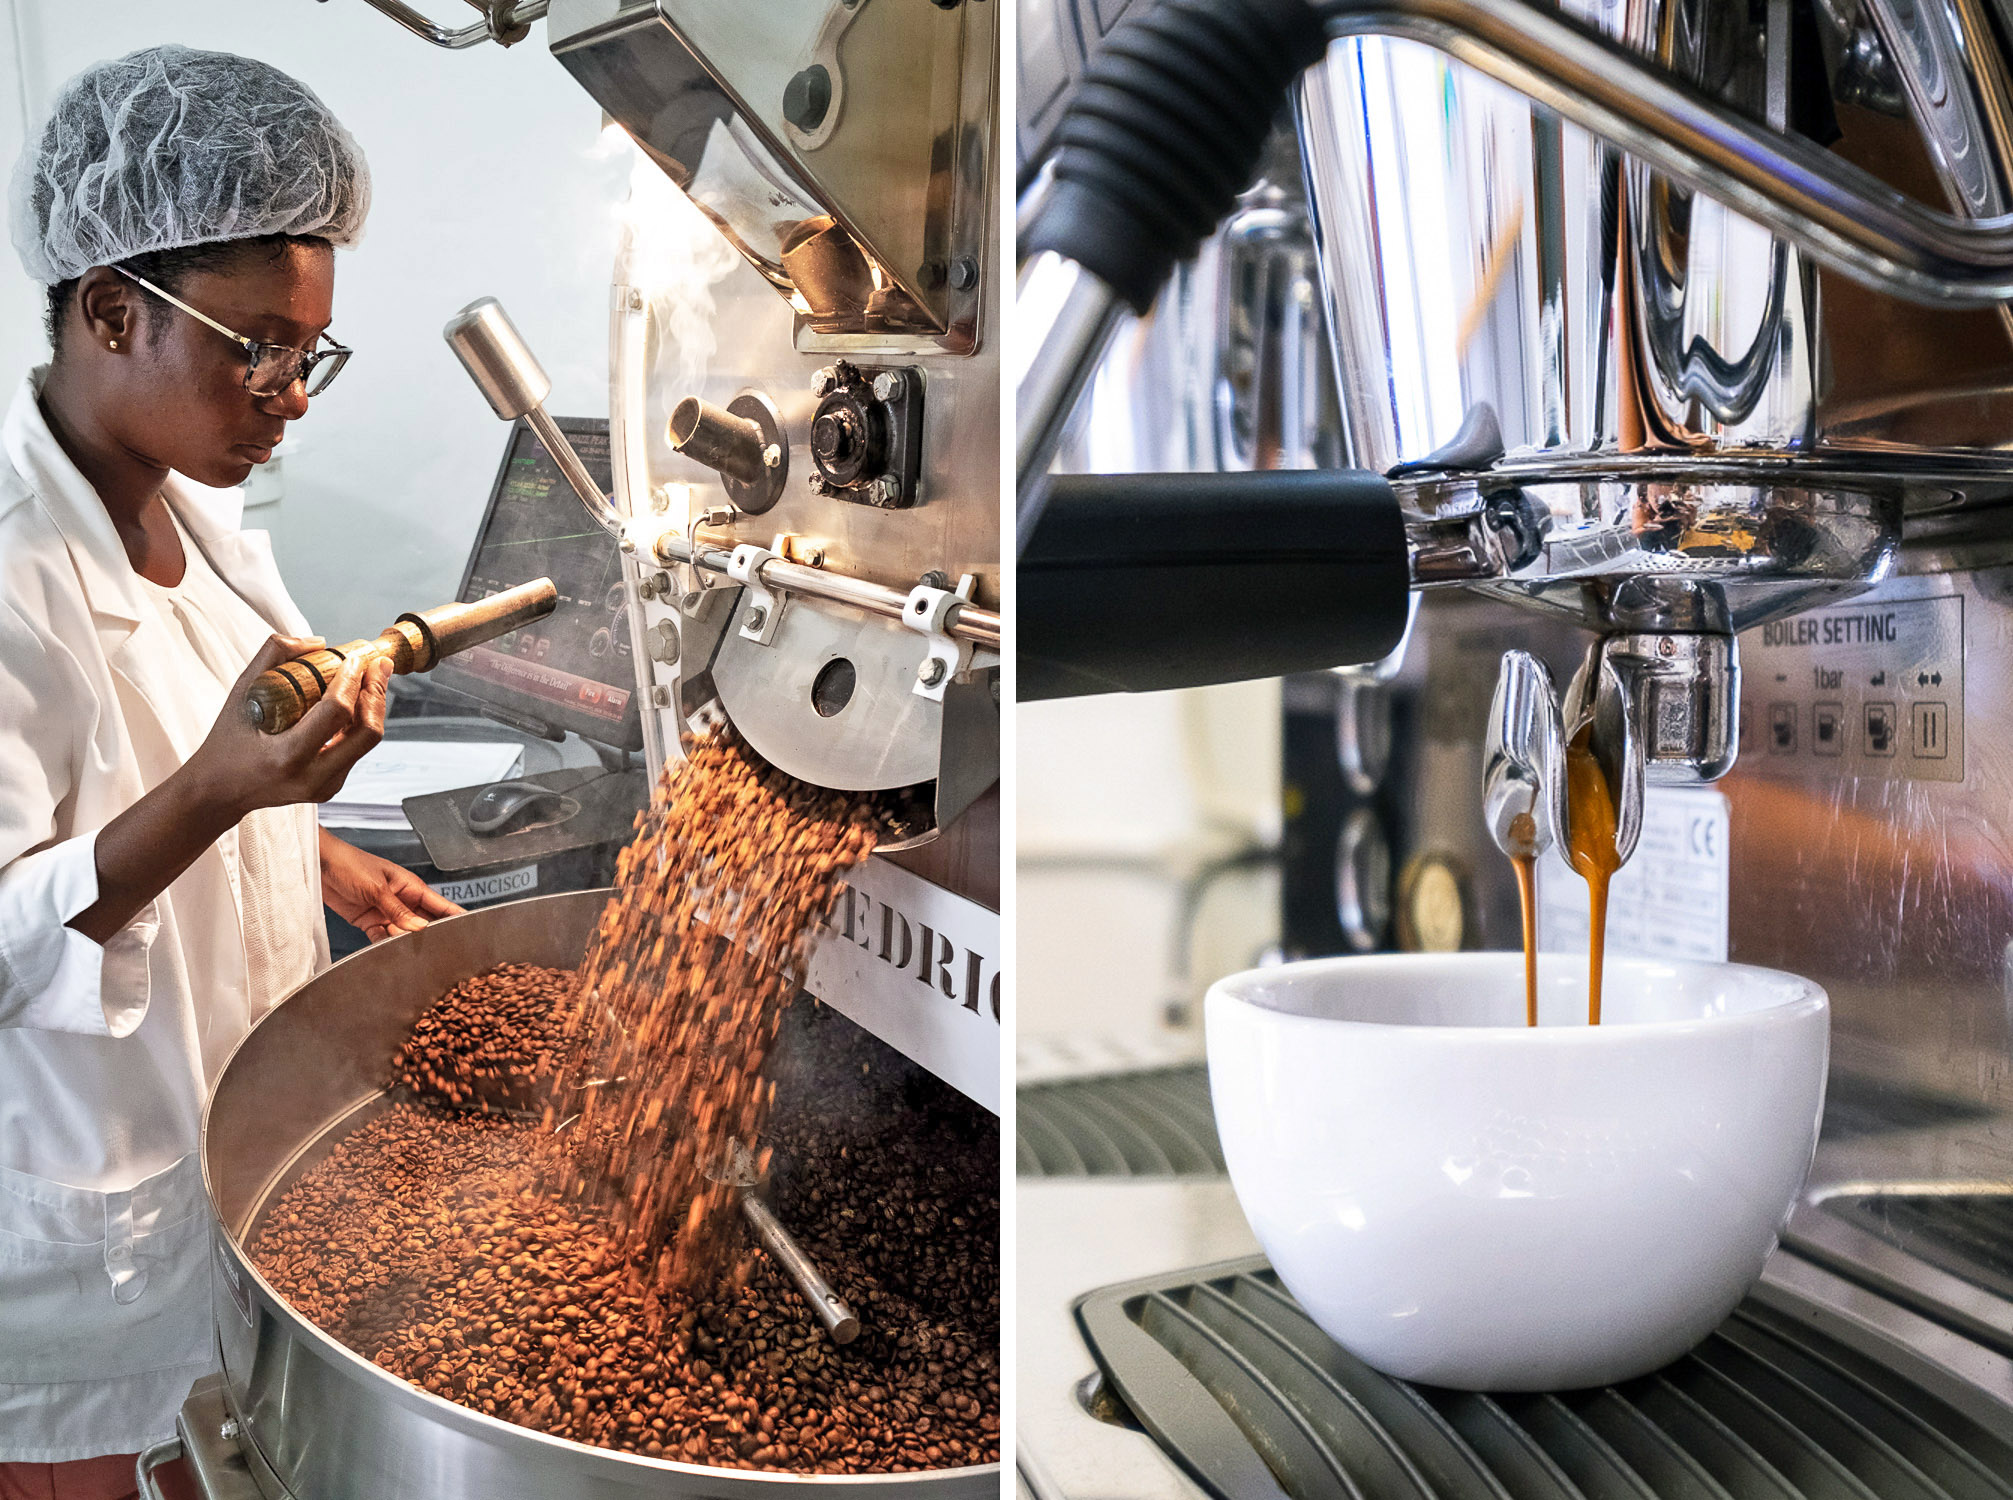 Wyndhams Coffee roastery in Christ Church | | A 5-Day Itinerary of What to See and Eat around Barbados